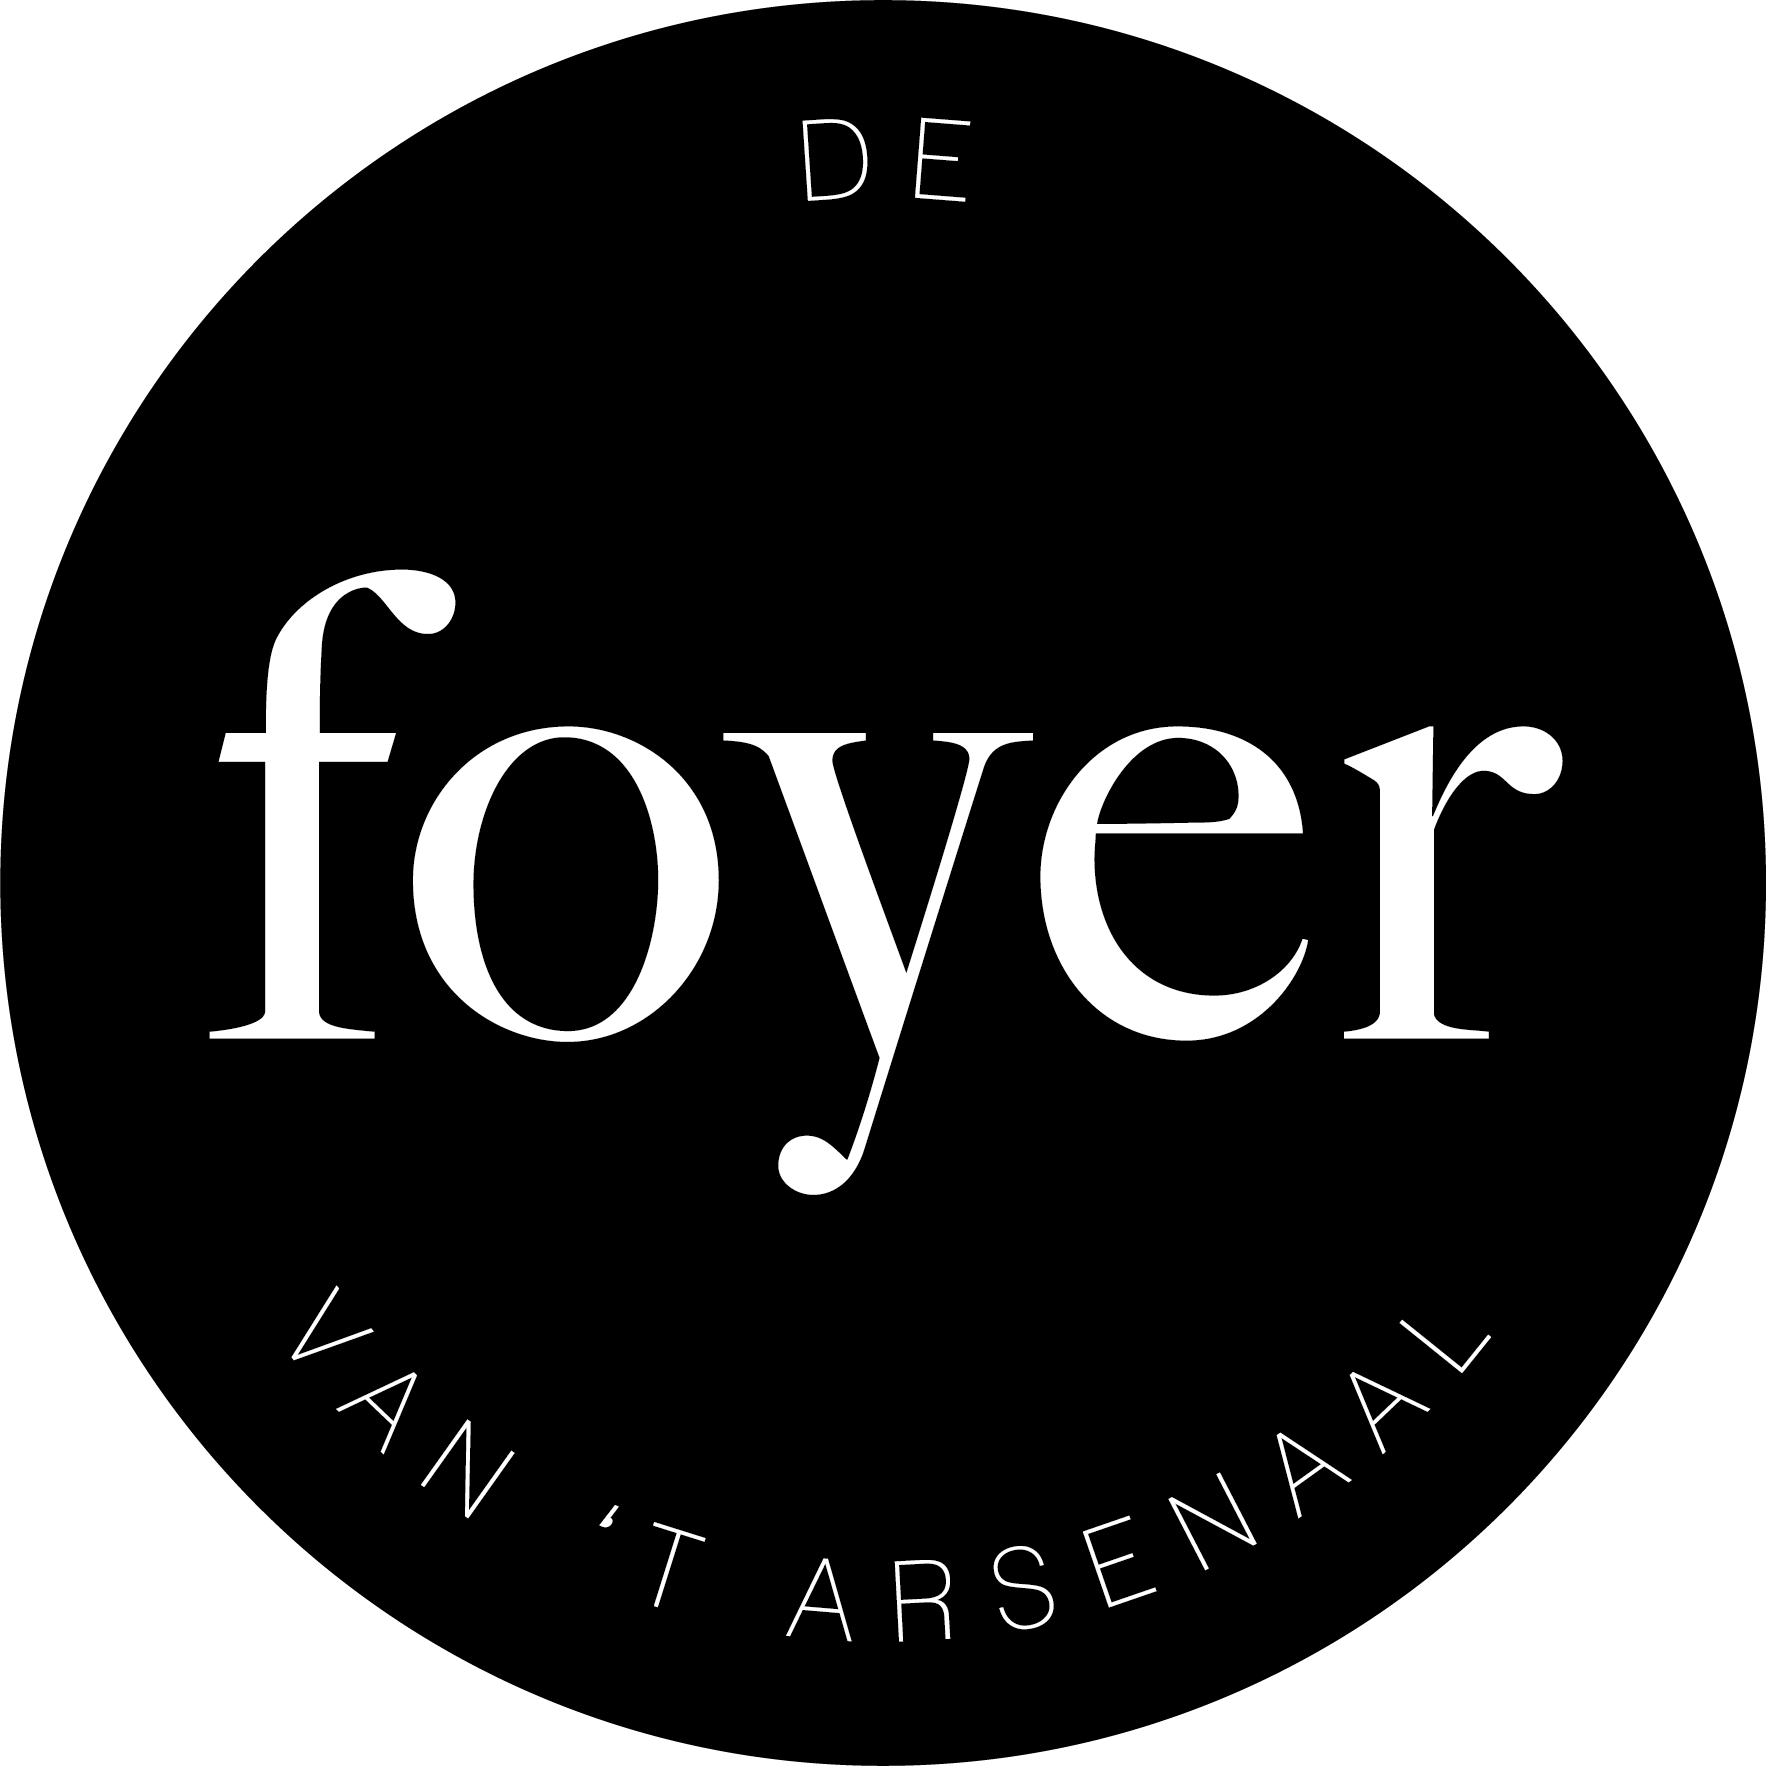 De Foyer Van't Arsenaal